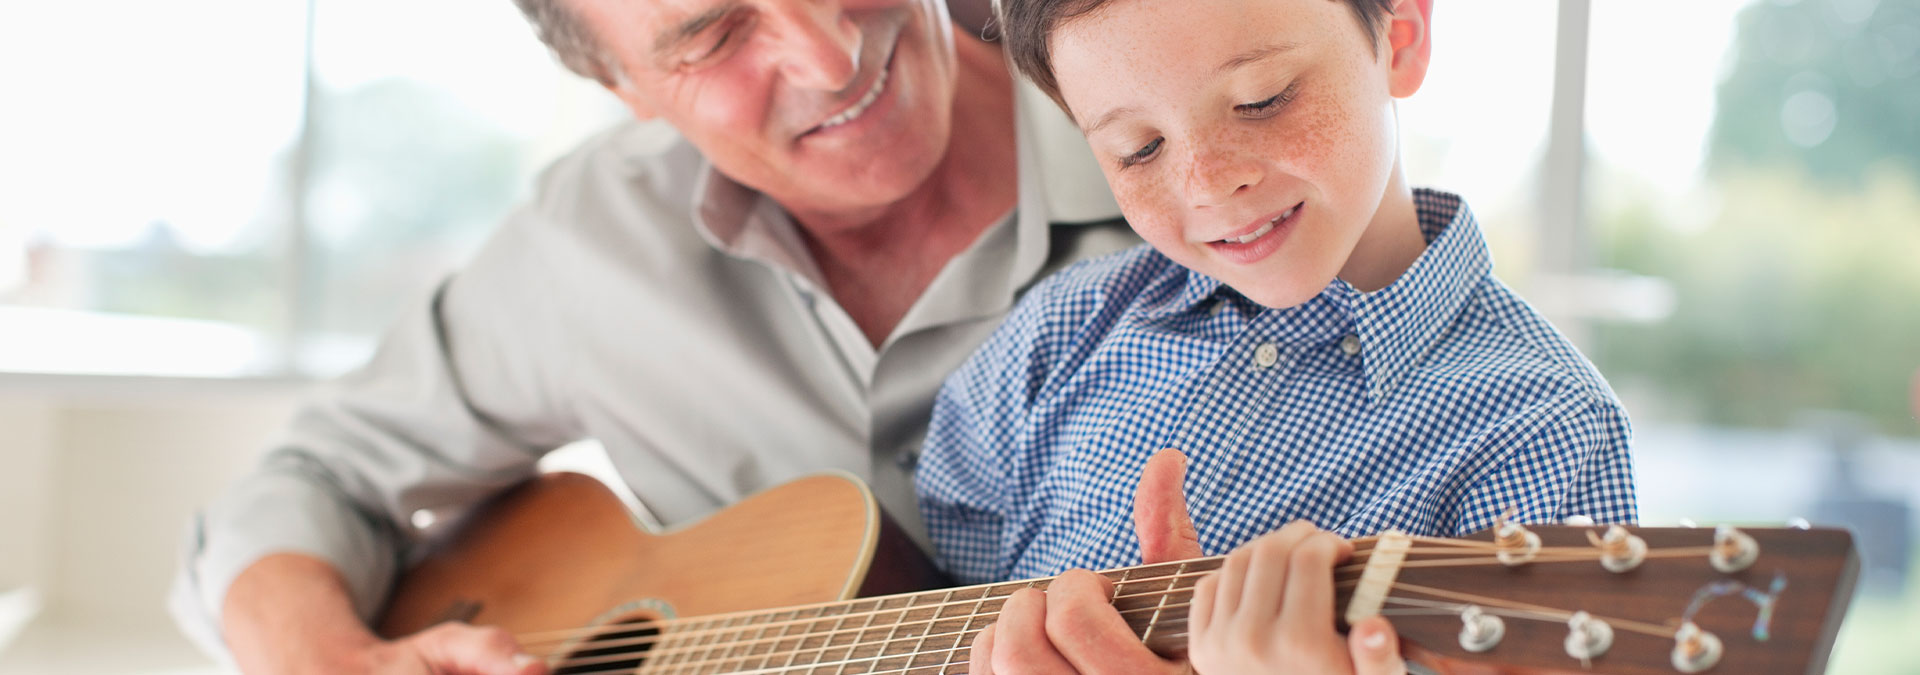 Grandfather and grandson playing the guitar